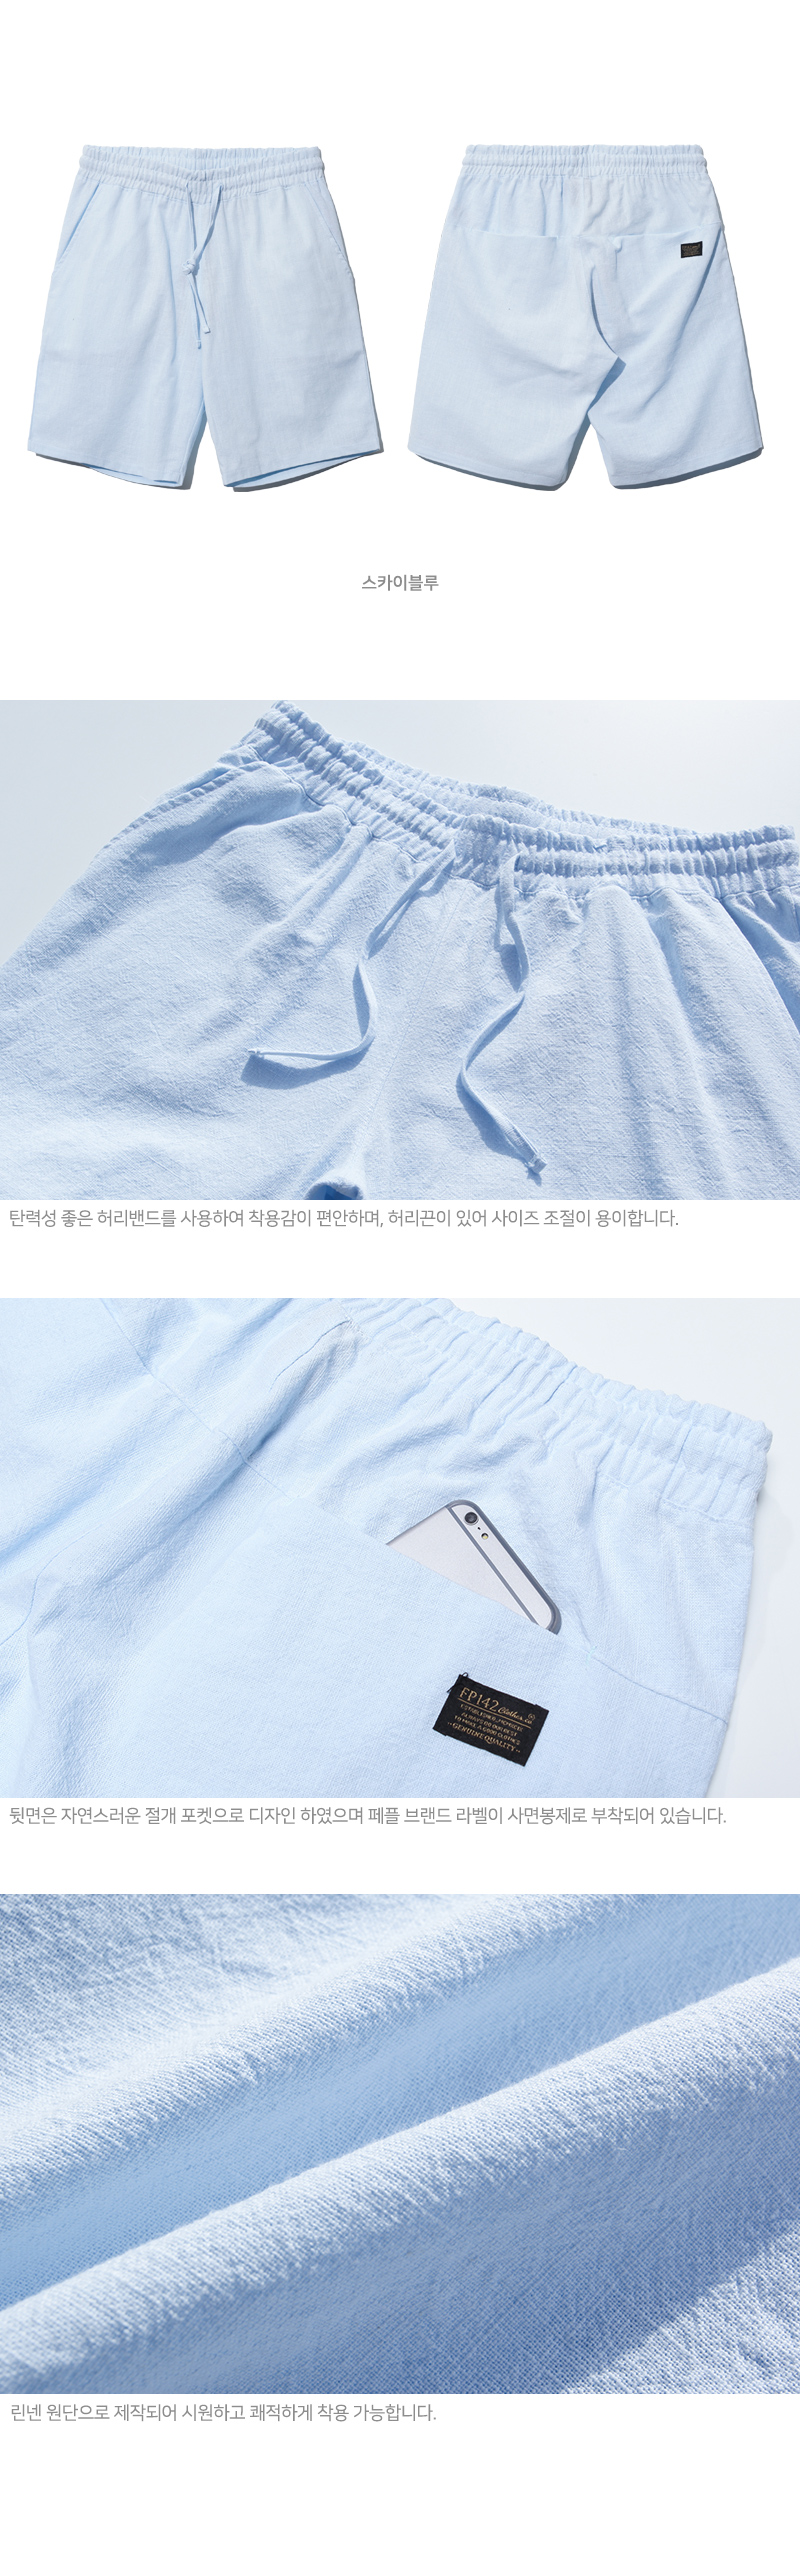 20190422_fp_realcooshortpants_detail_skyblue.jpg